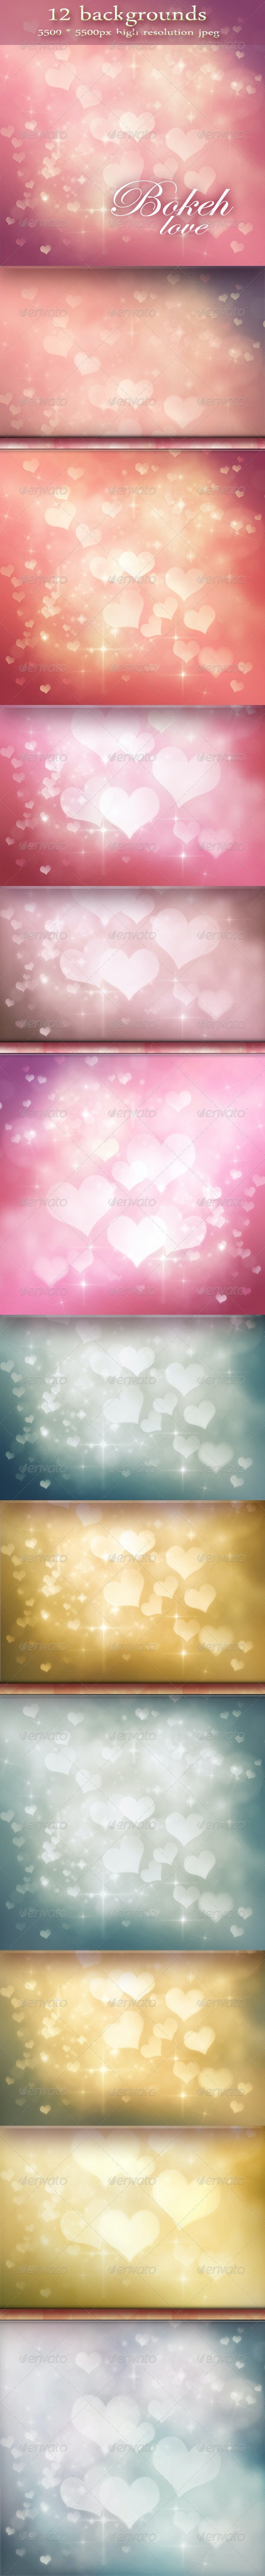 Festive Bokeh Backgrounds - Valentine's Day - Backgrounds Graphics